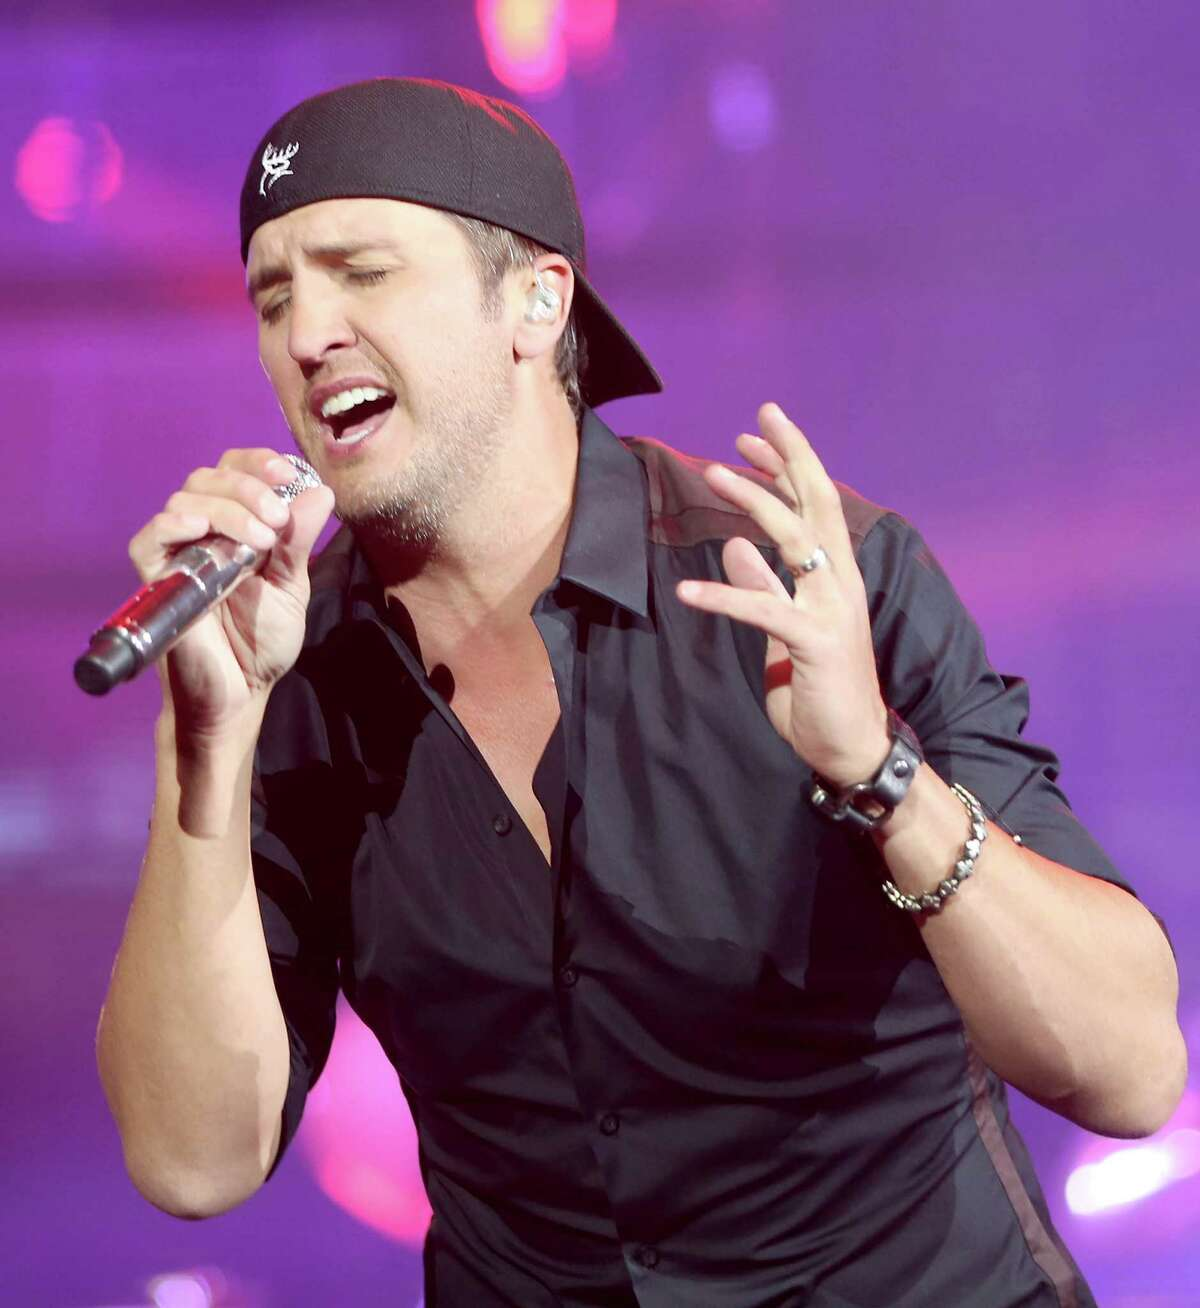 RodeoHouston March 22: Luke Bryan. It's all about beer, parties and pretty girls. Sold out.Continue clicking to see who else turned RodeoHouston into a party this year.